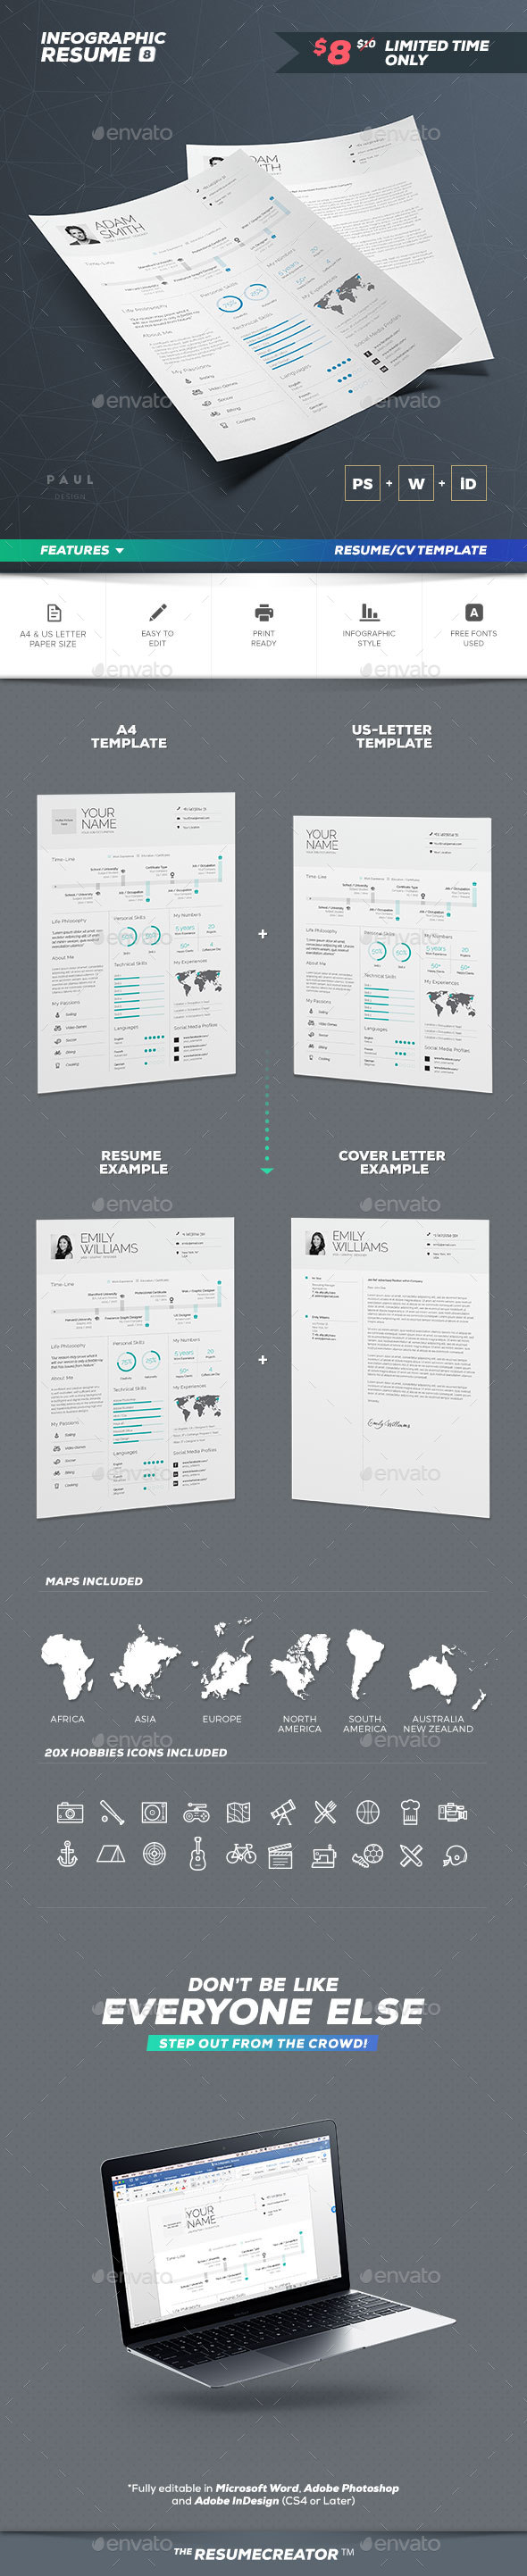 Infographic Resume/Cv Volume 8 - Resumes Stationery